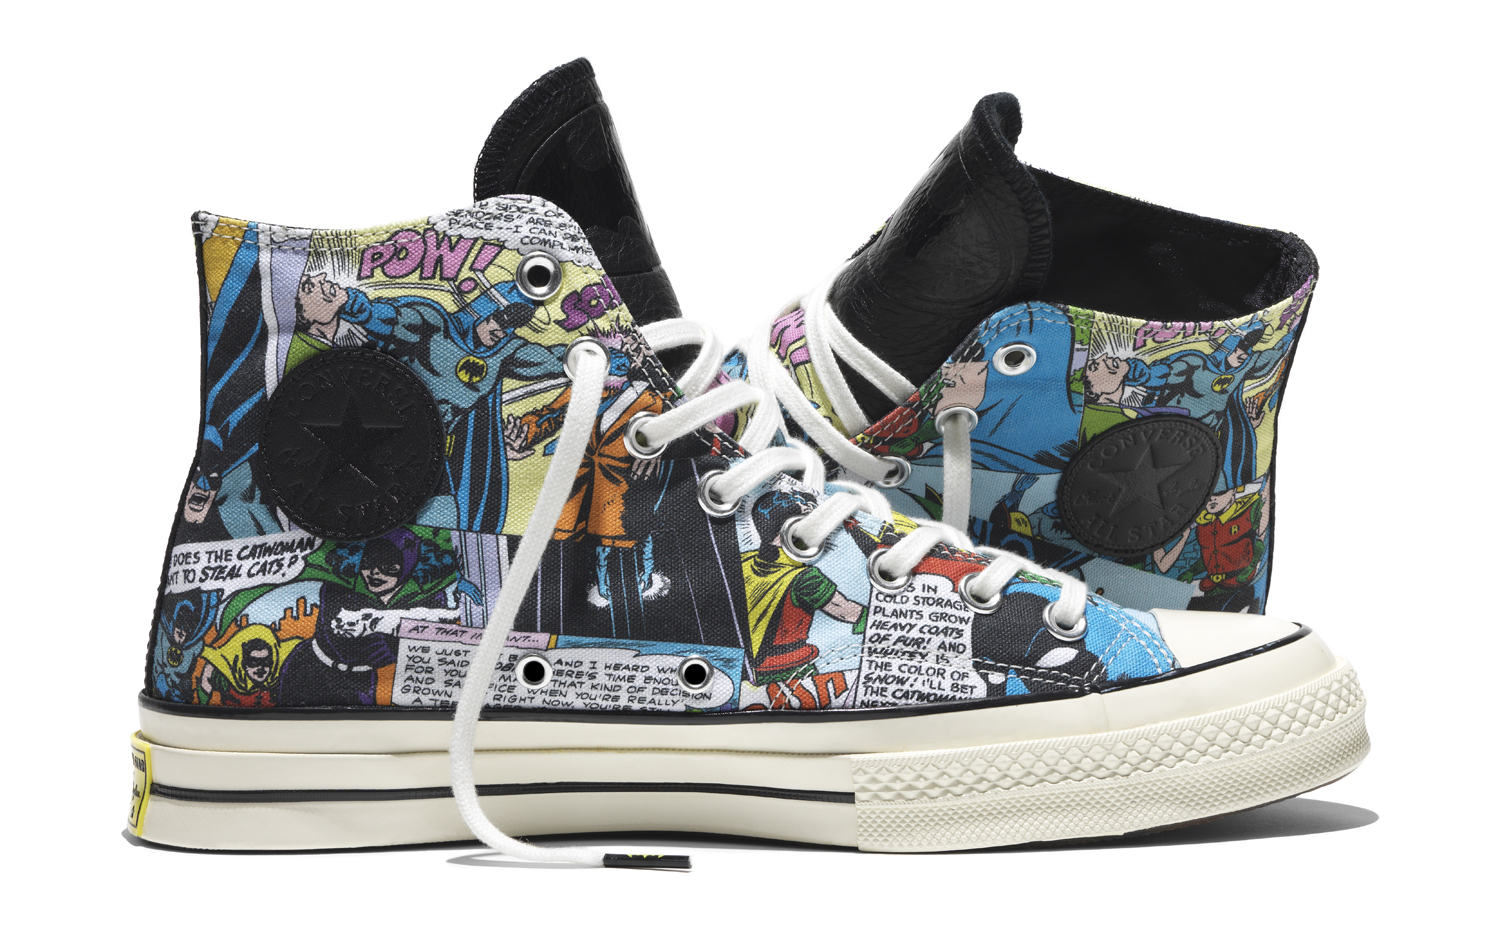 Batman Converse Sneakers